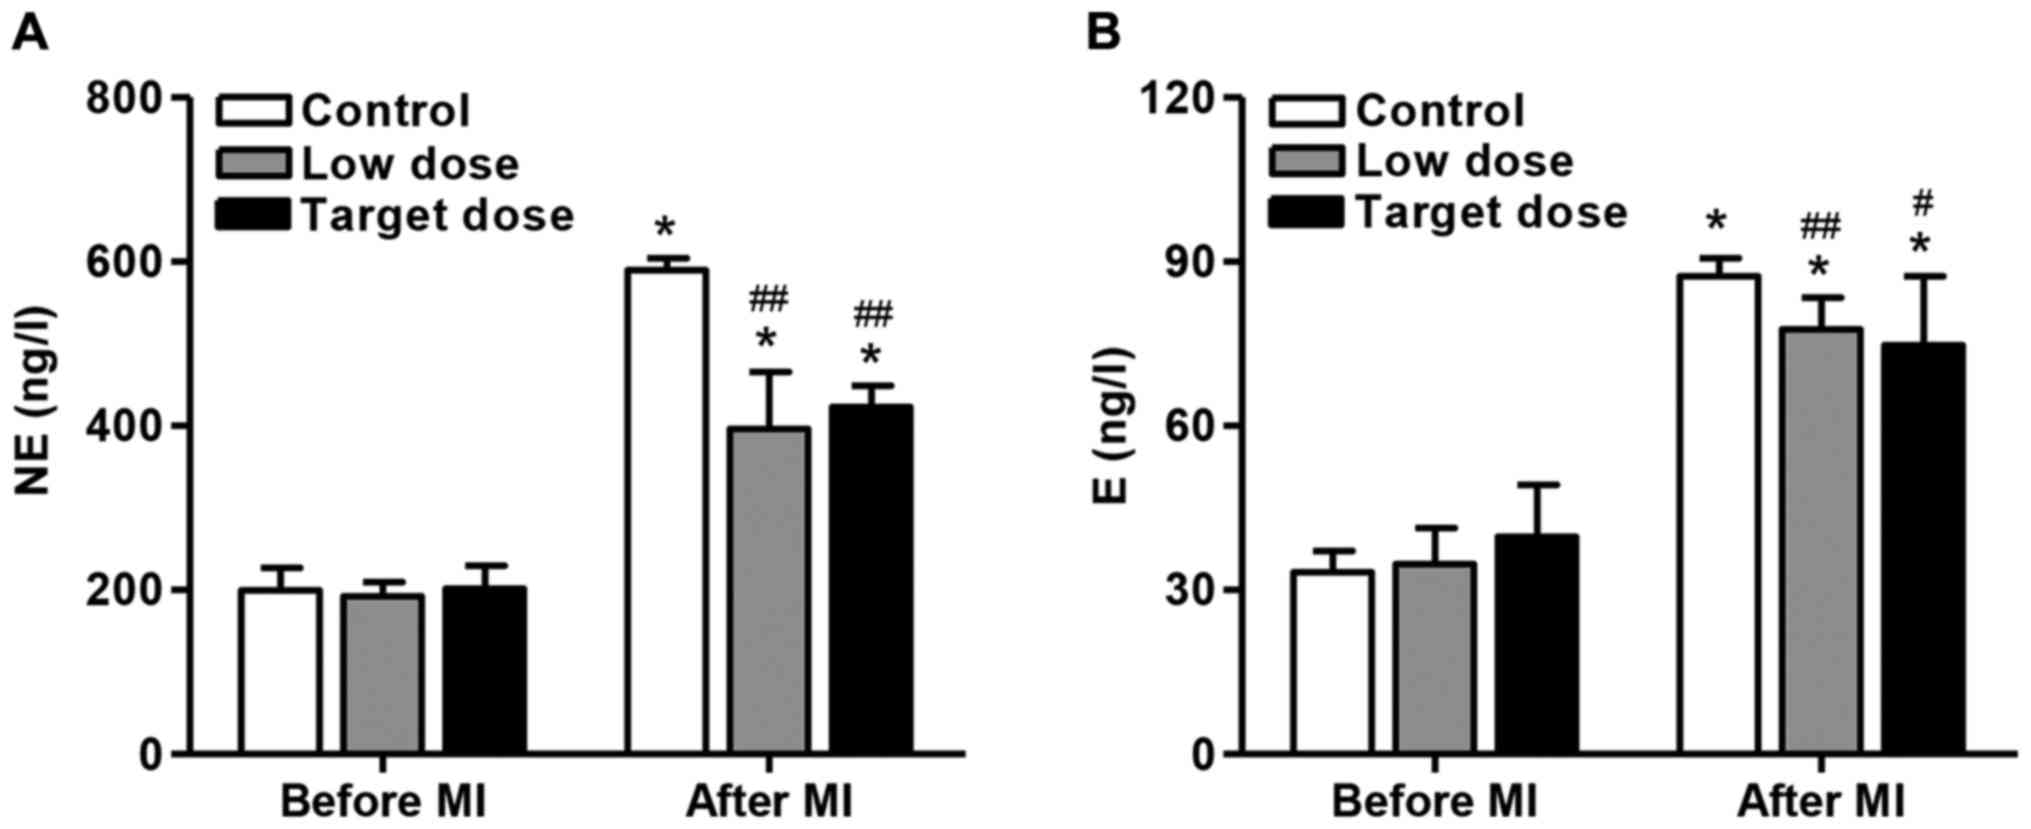 Effects of early intravenous low-dose of metoprolol on